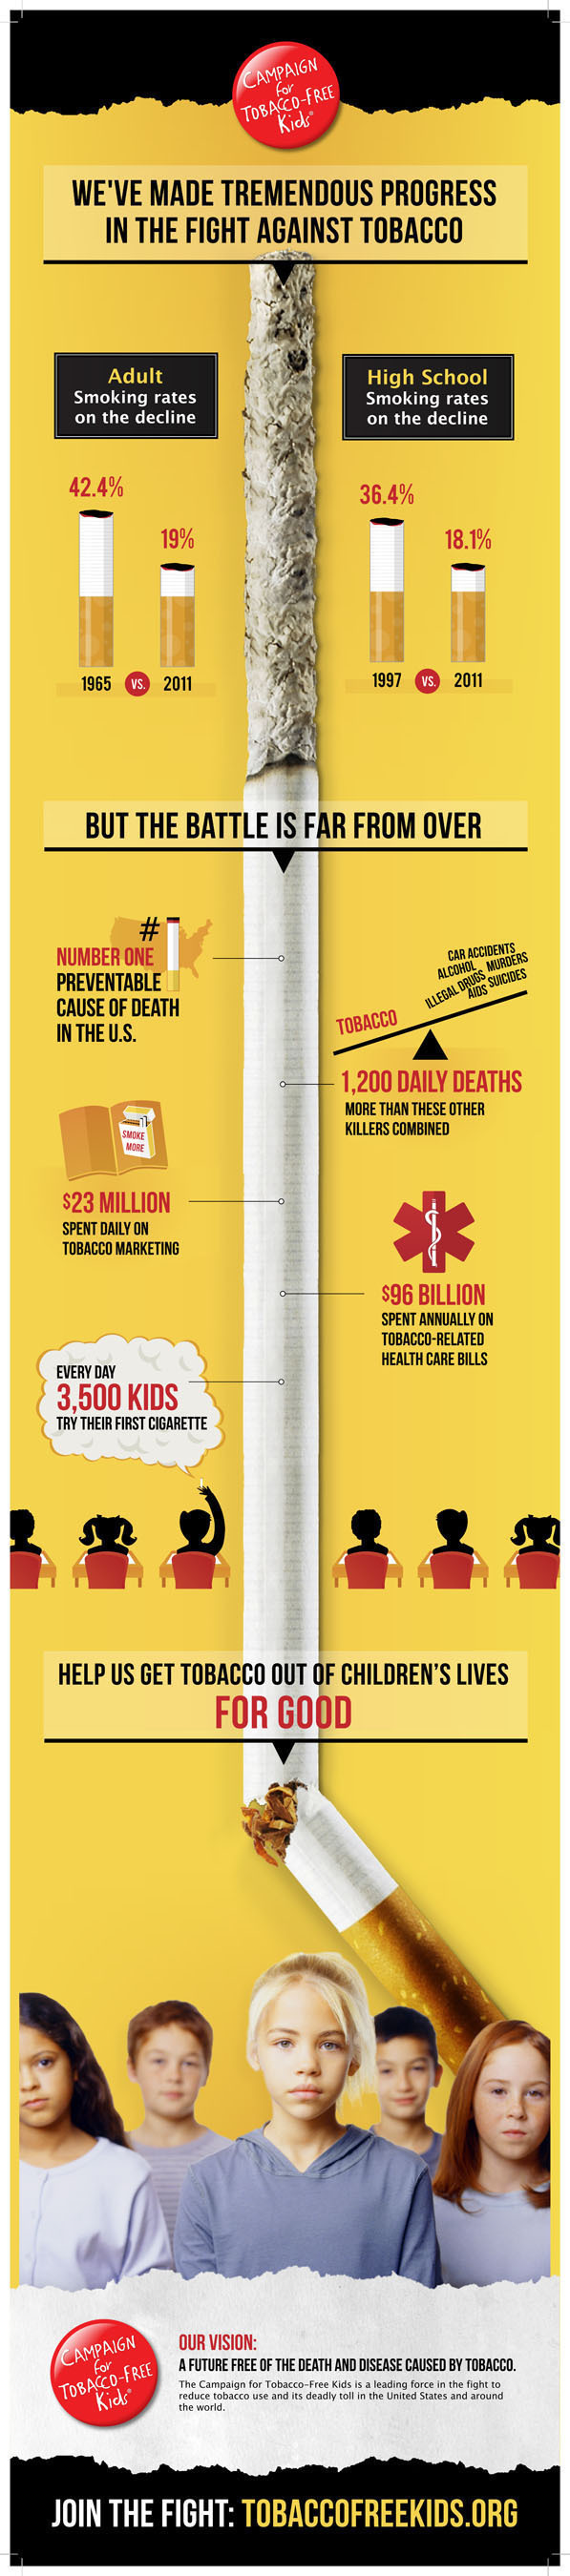 Robert Wood Johnson Foundation and Campaign for Tobacco-Free Kids Launch New Initiative to Reduce